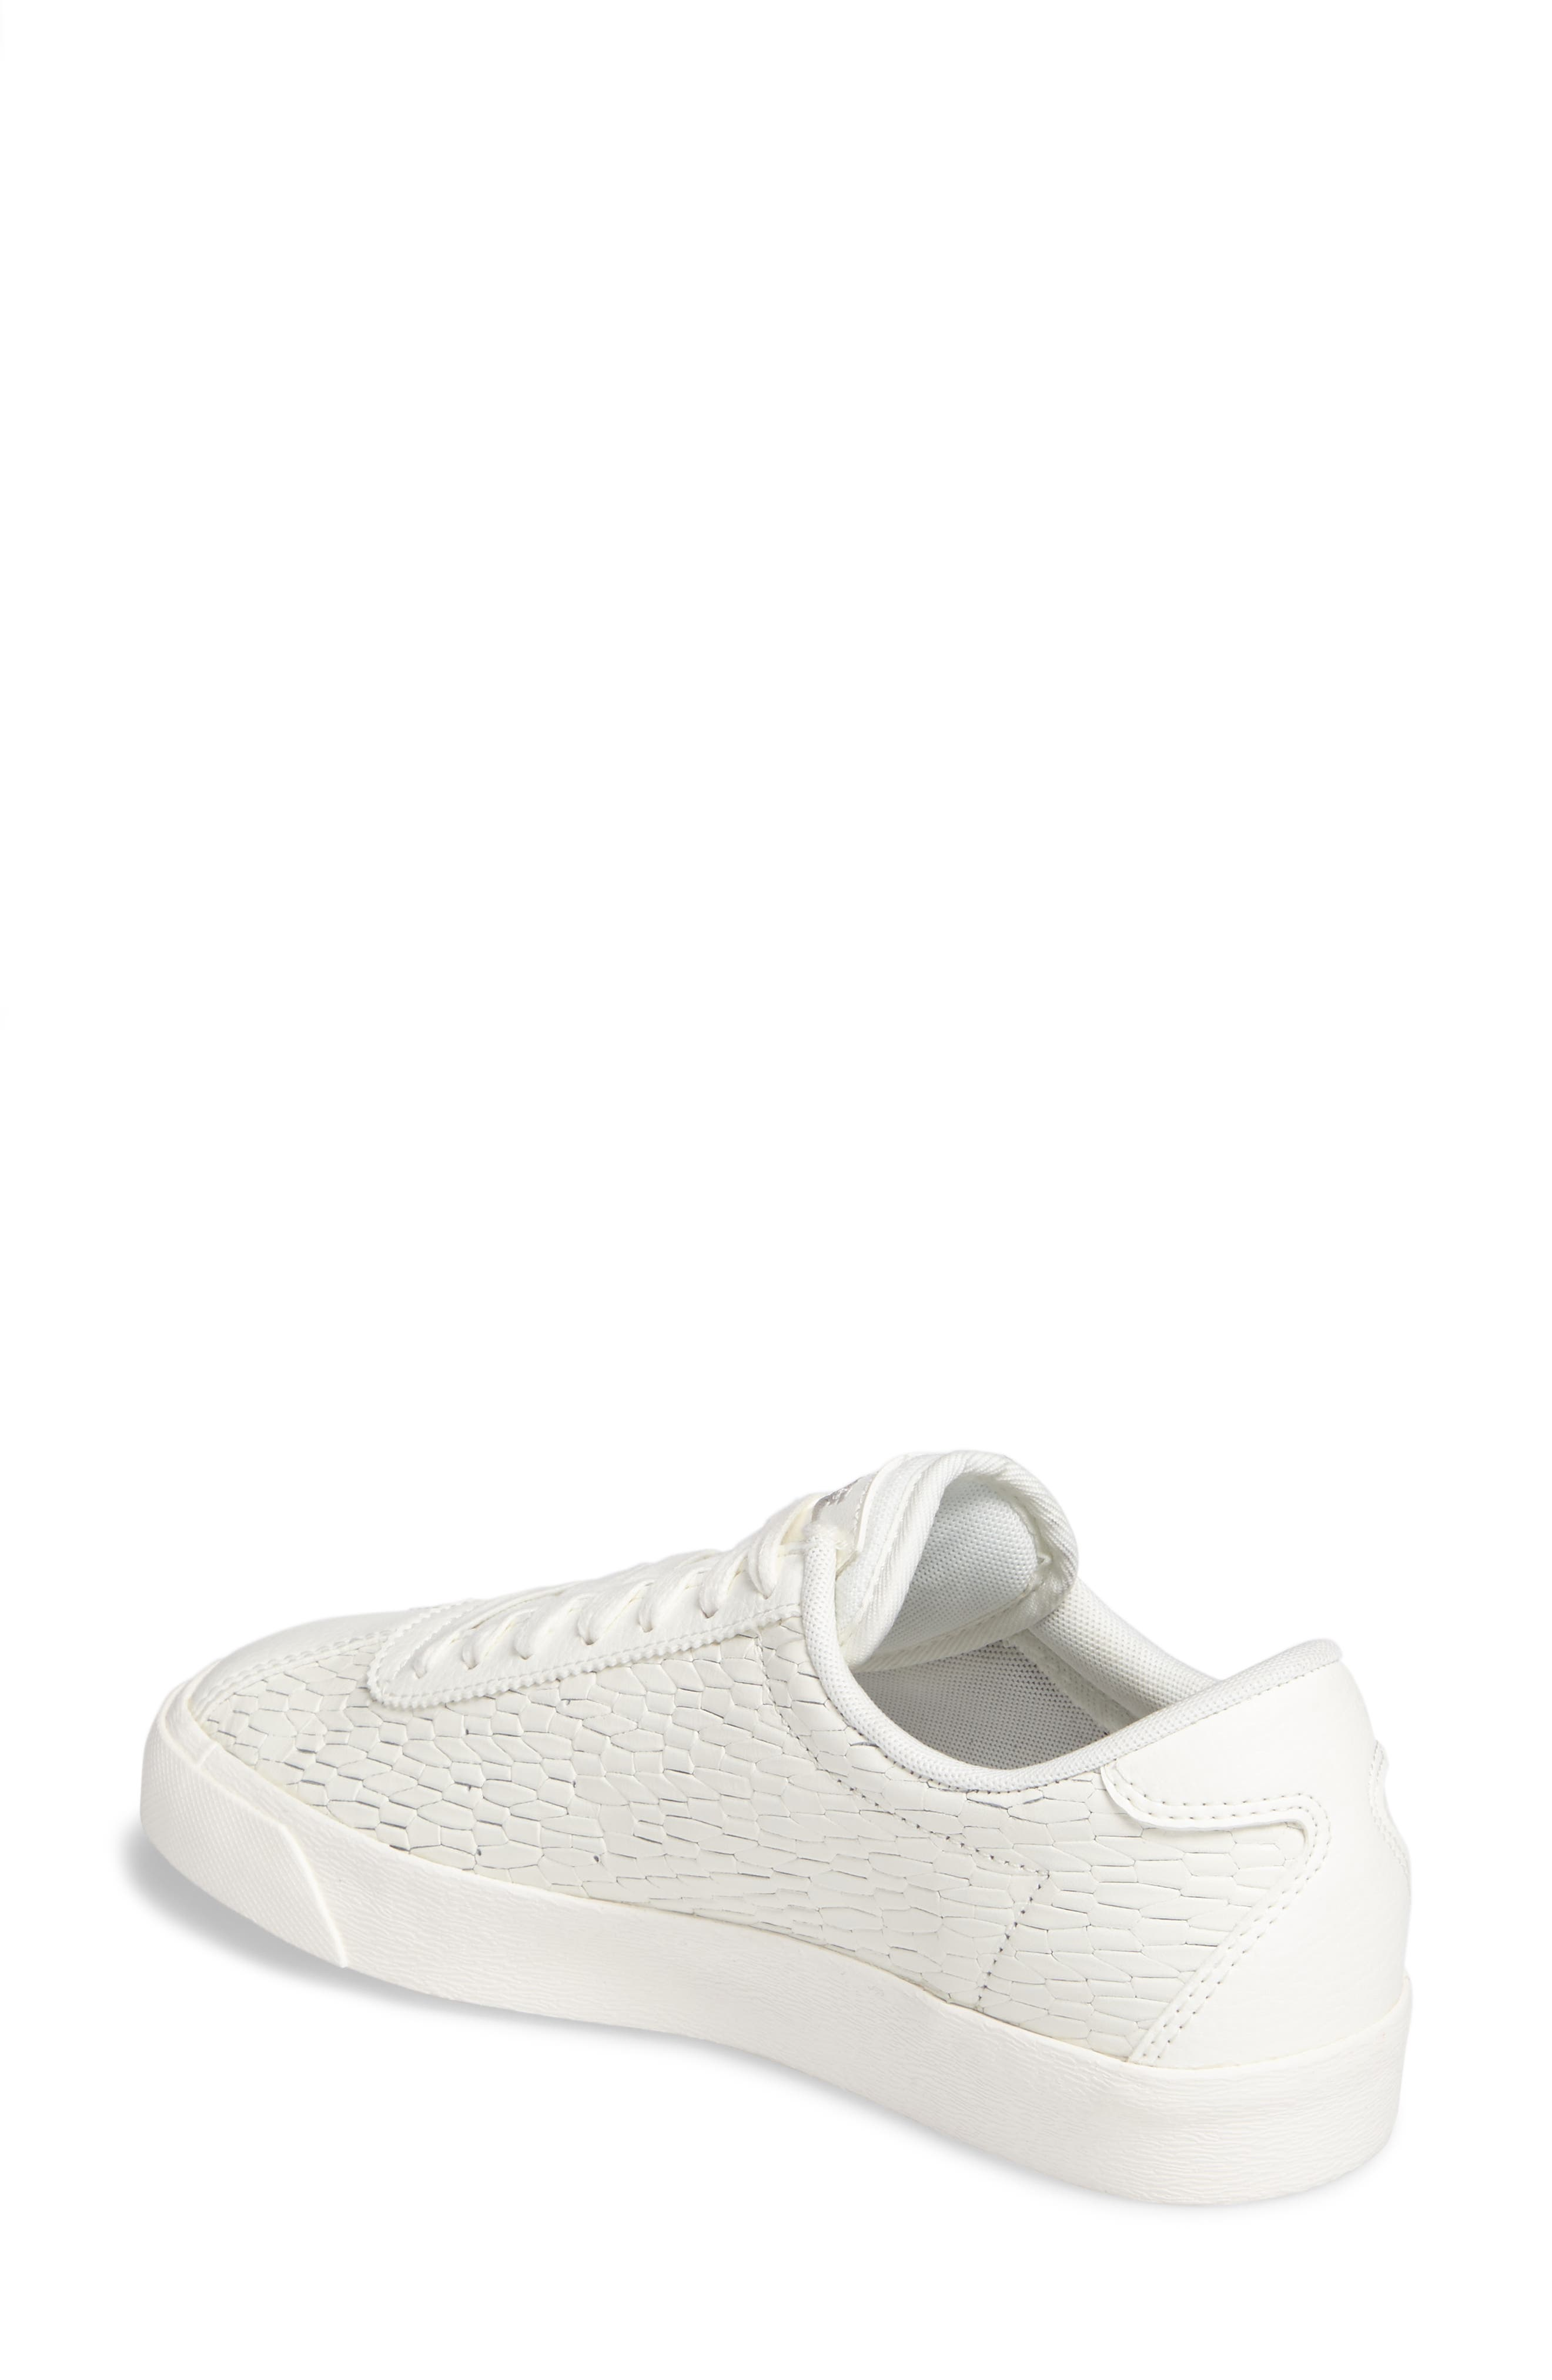 Match Classic Sneaker,                             Alternate thumbnail 2, color,                             250